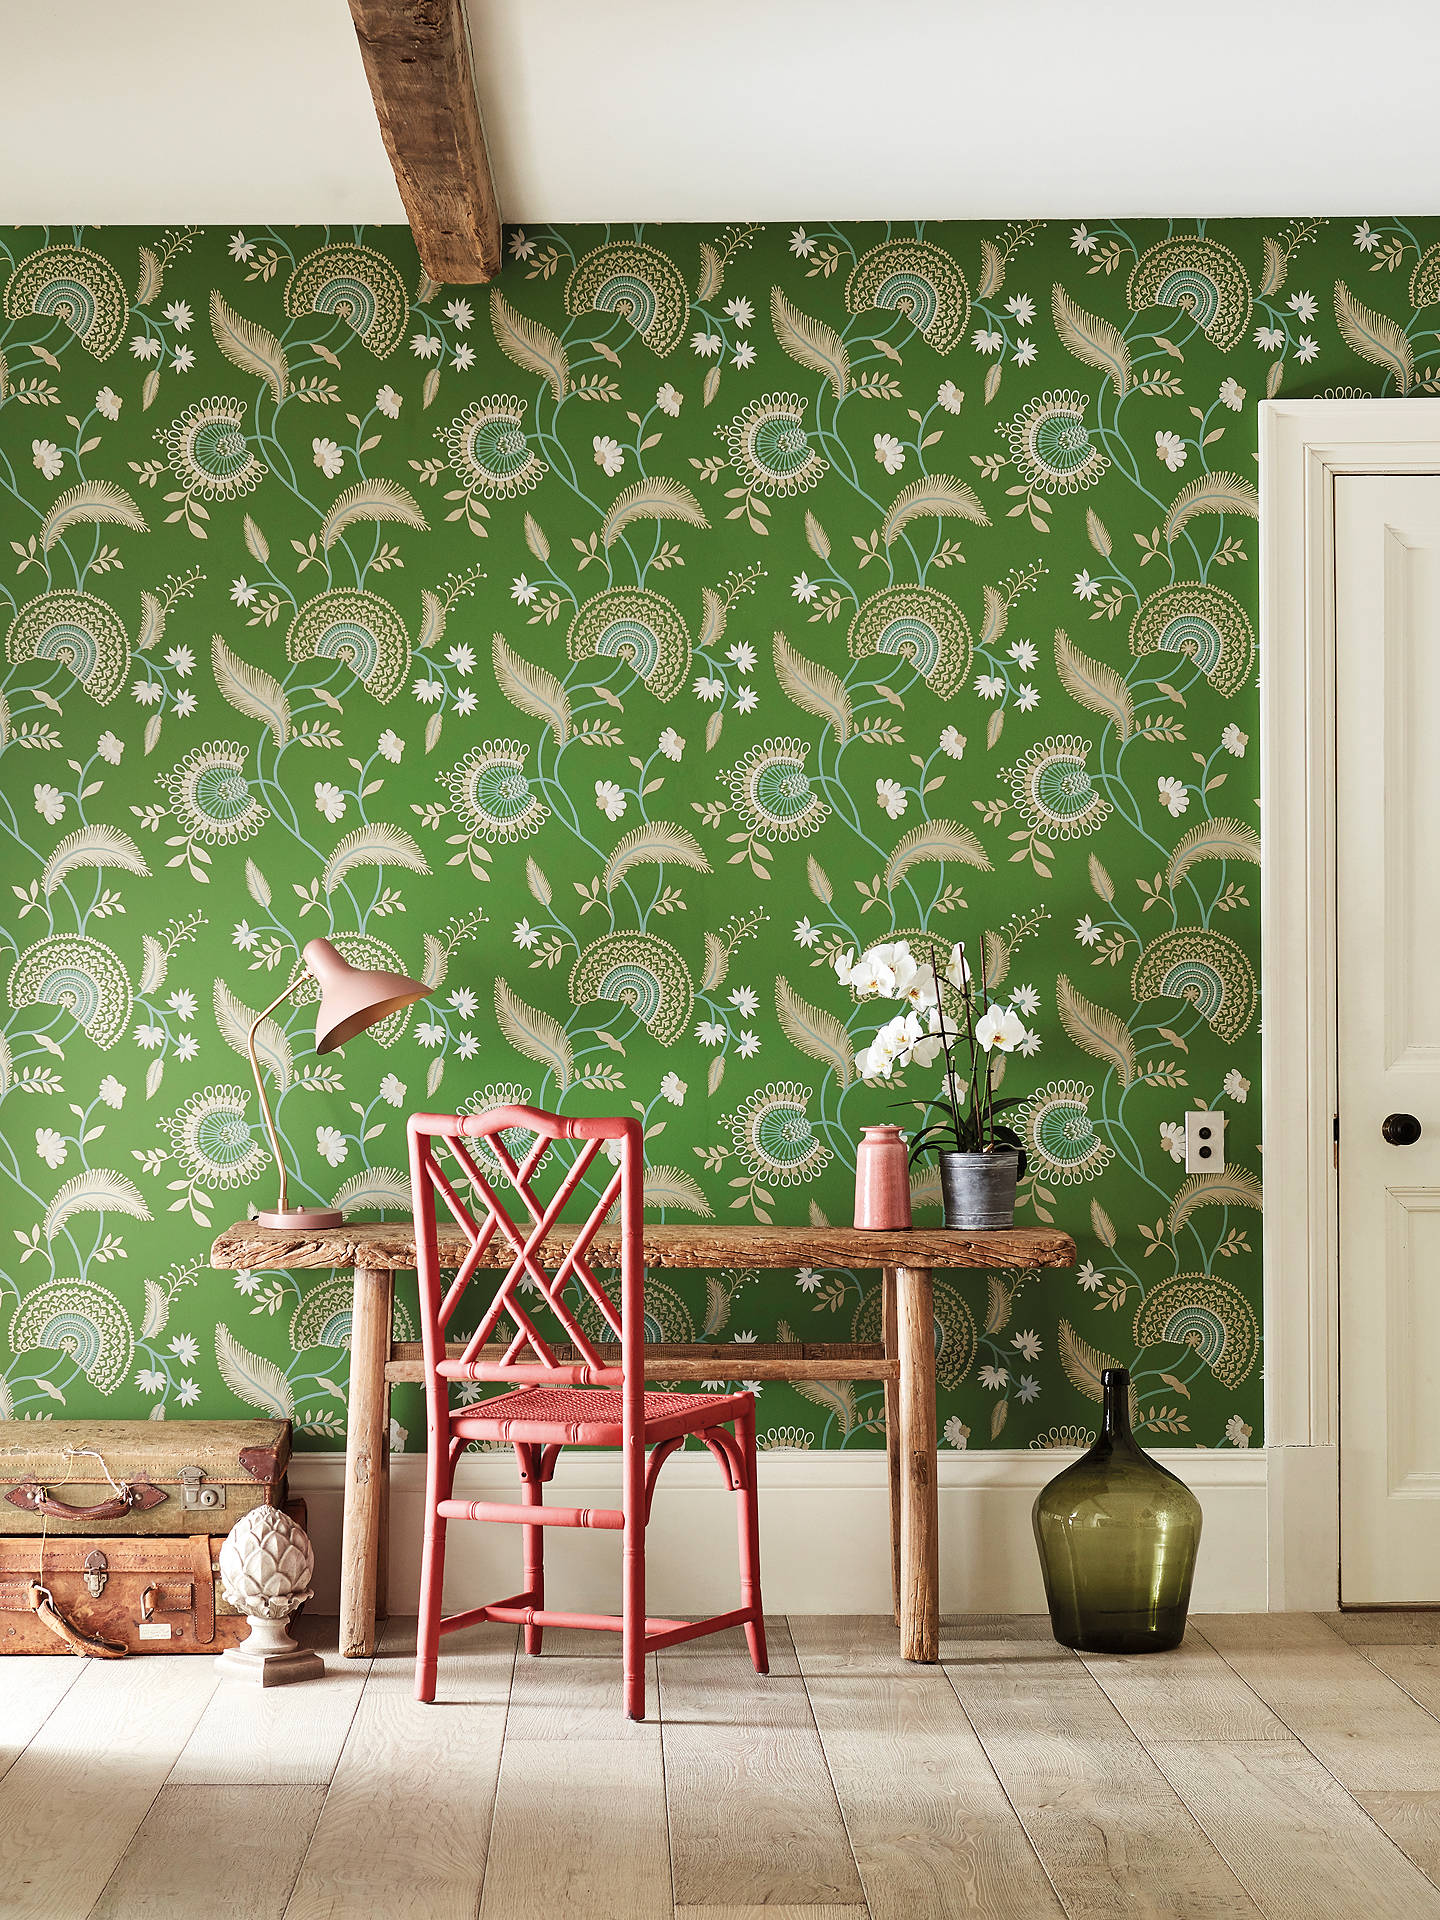 Buy Sanderson Hakimi Wallpaper, DCPW216768 Online at johnlewis.com